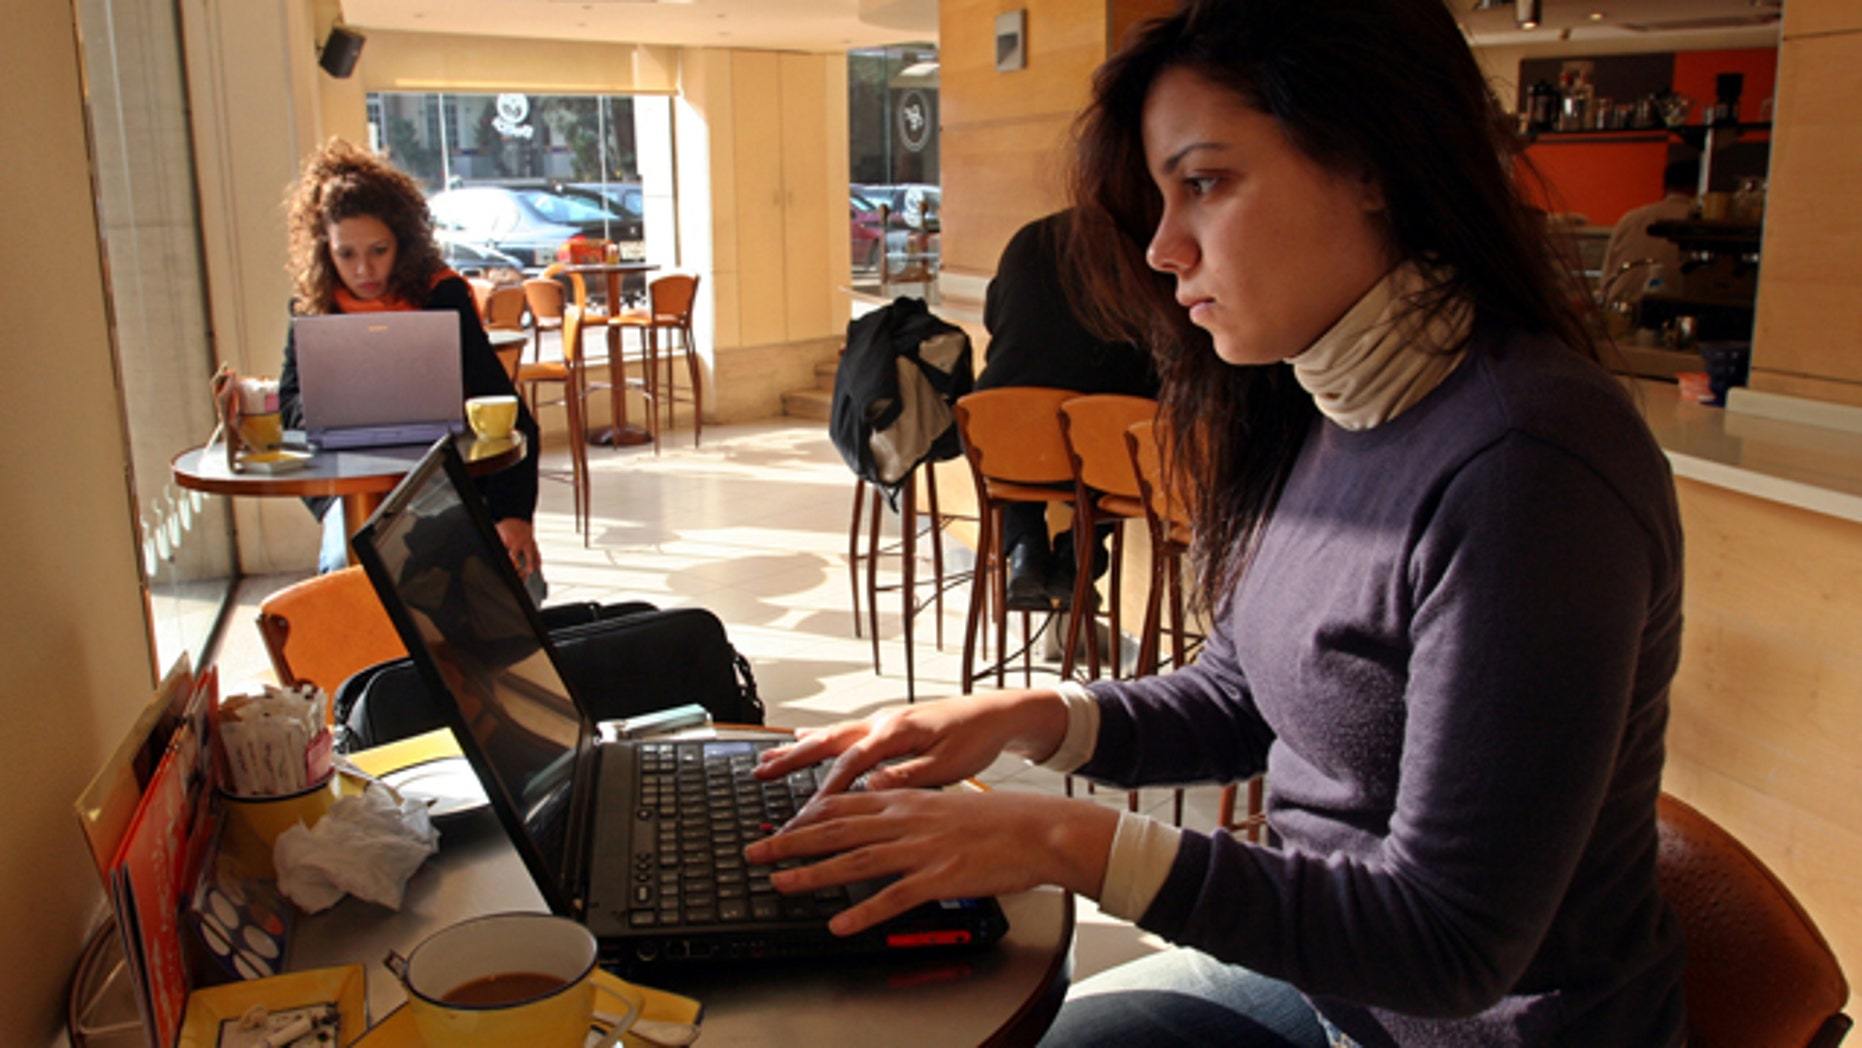 FILE: Egyptians work on their computers in a cafe in Cairo.